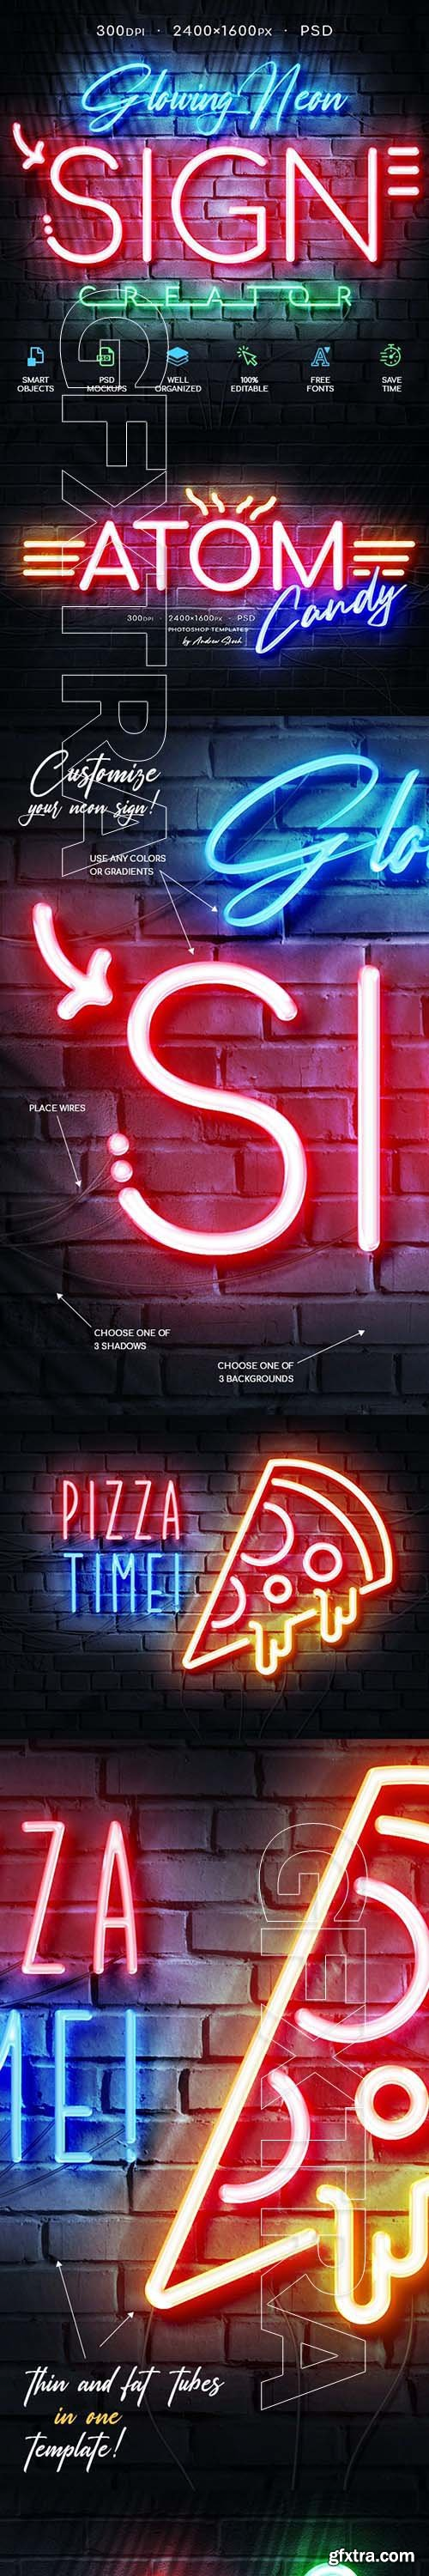 GraphicRiver - Glowing Neon Sign 28521582